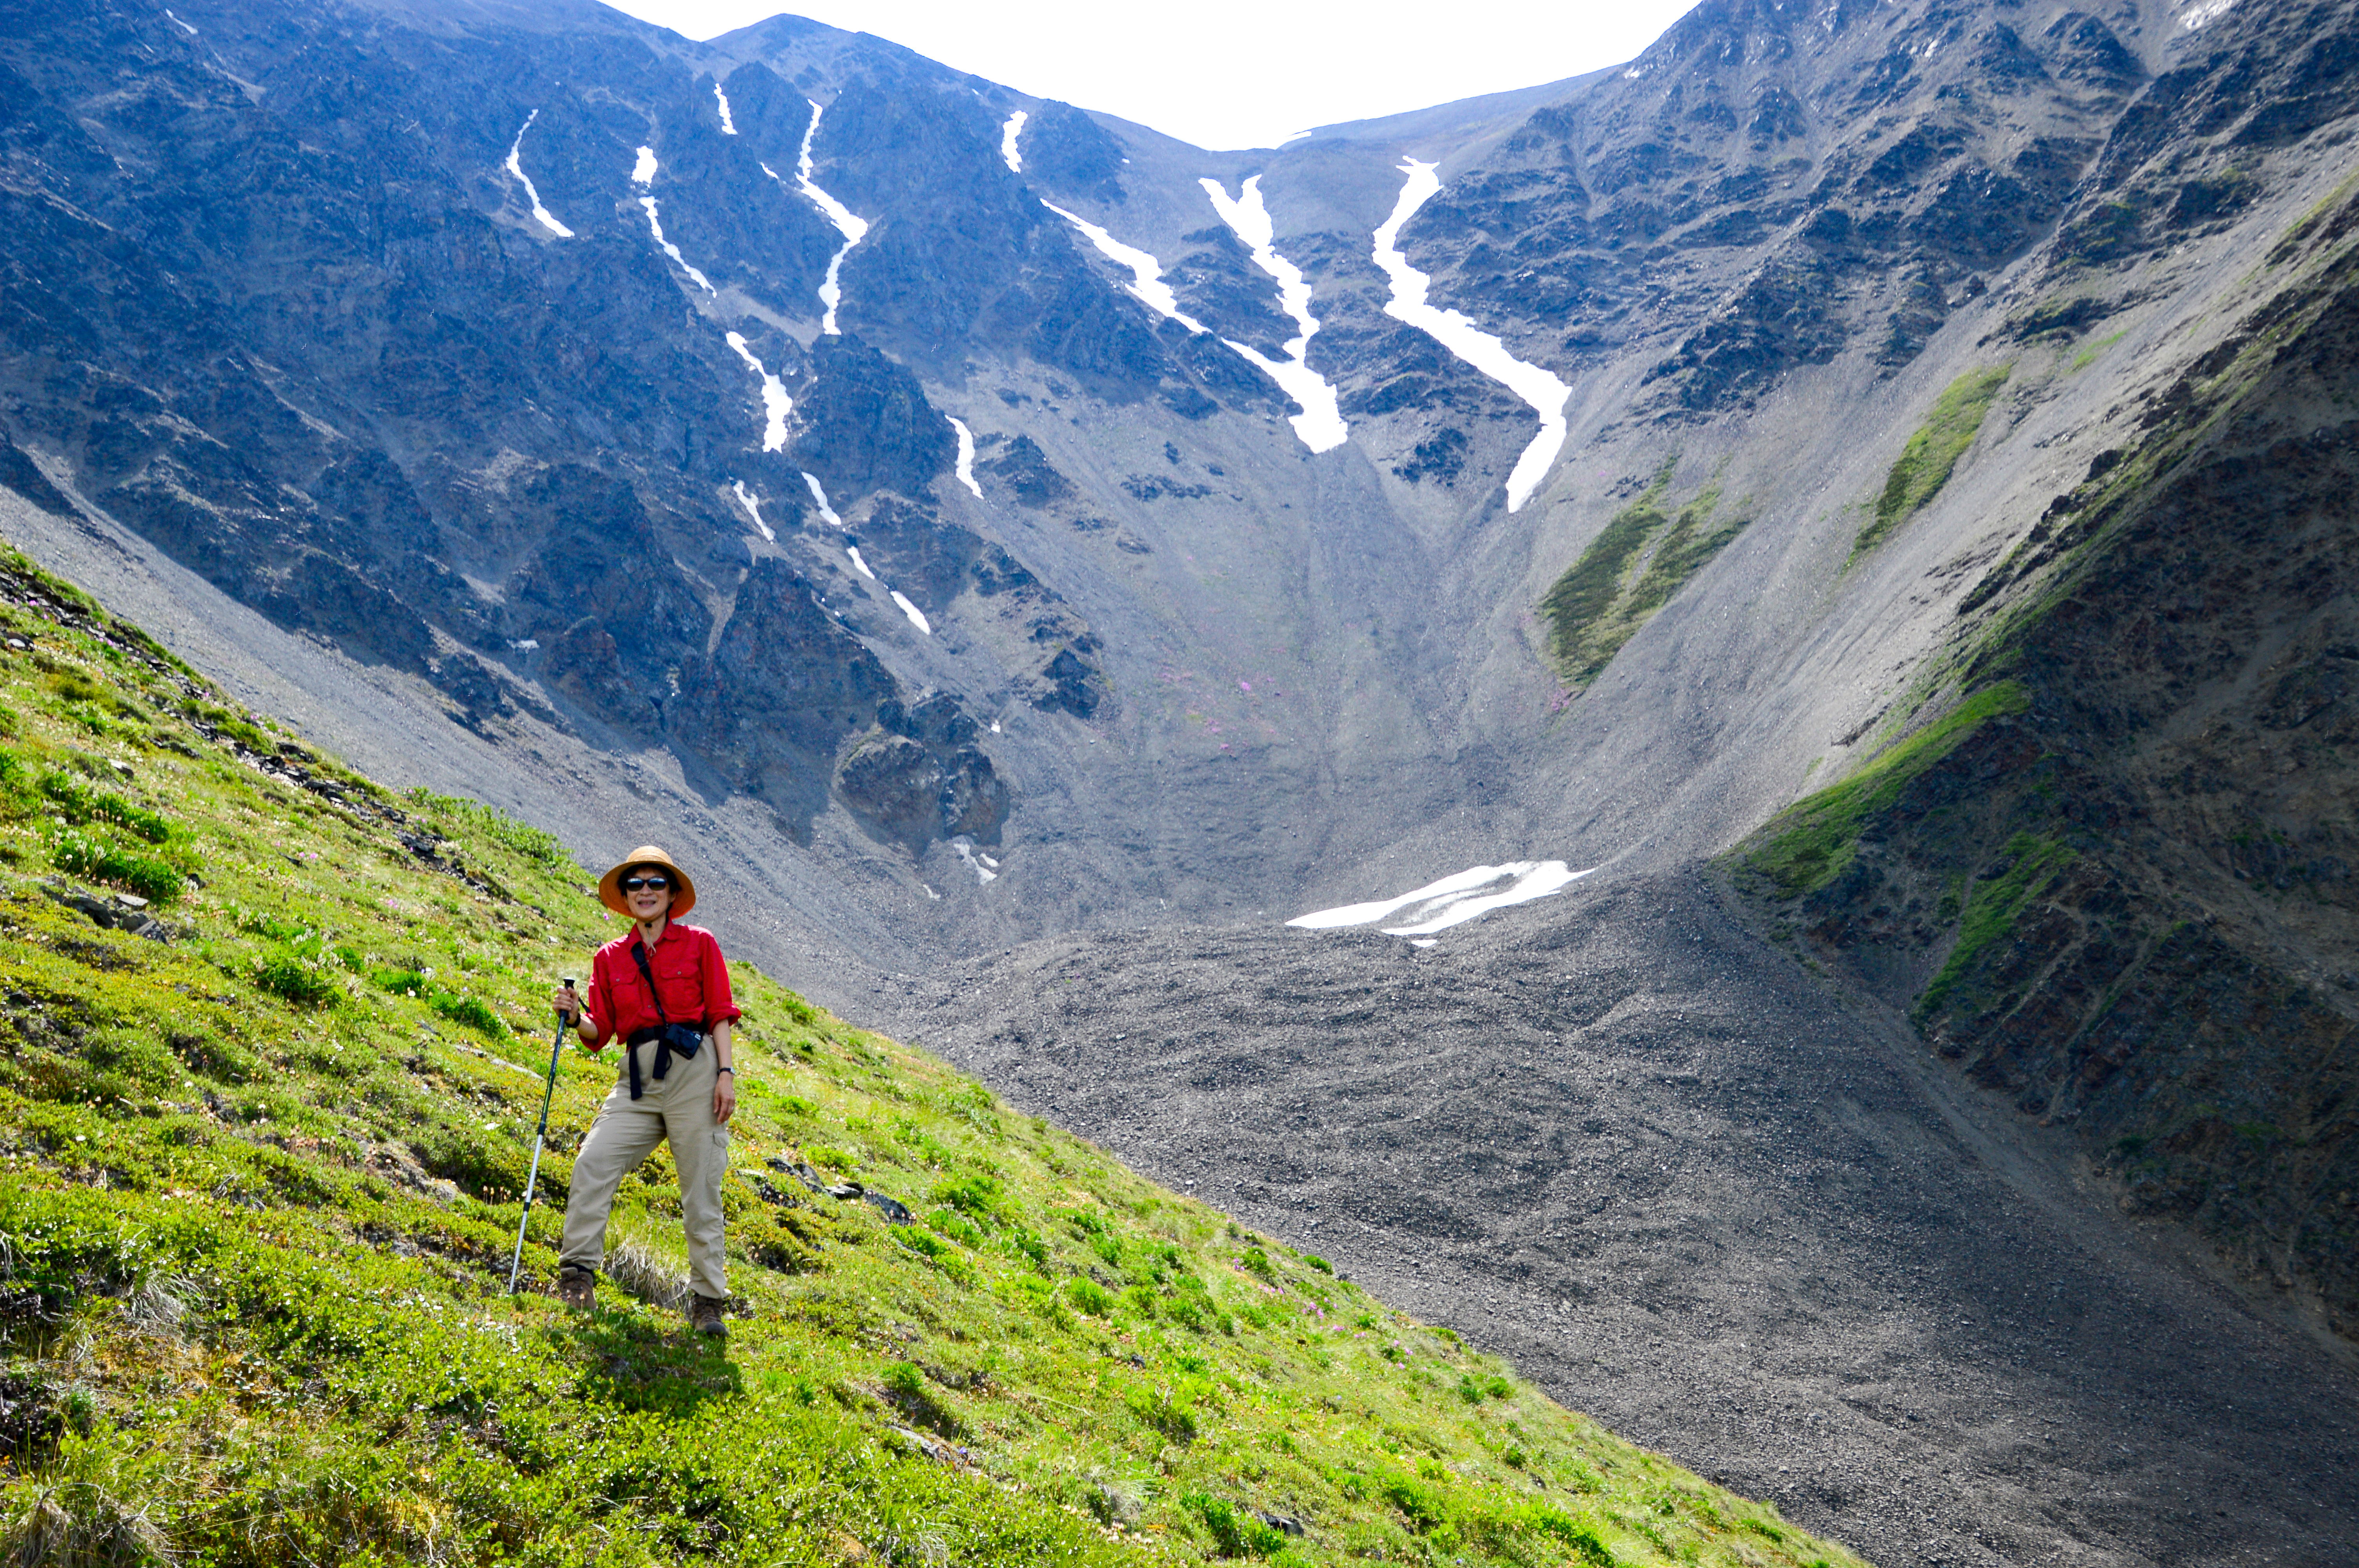 Picture of Hike Like a Pro With These 6 Tips